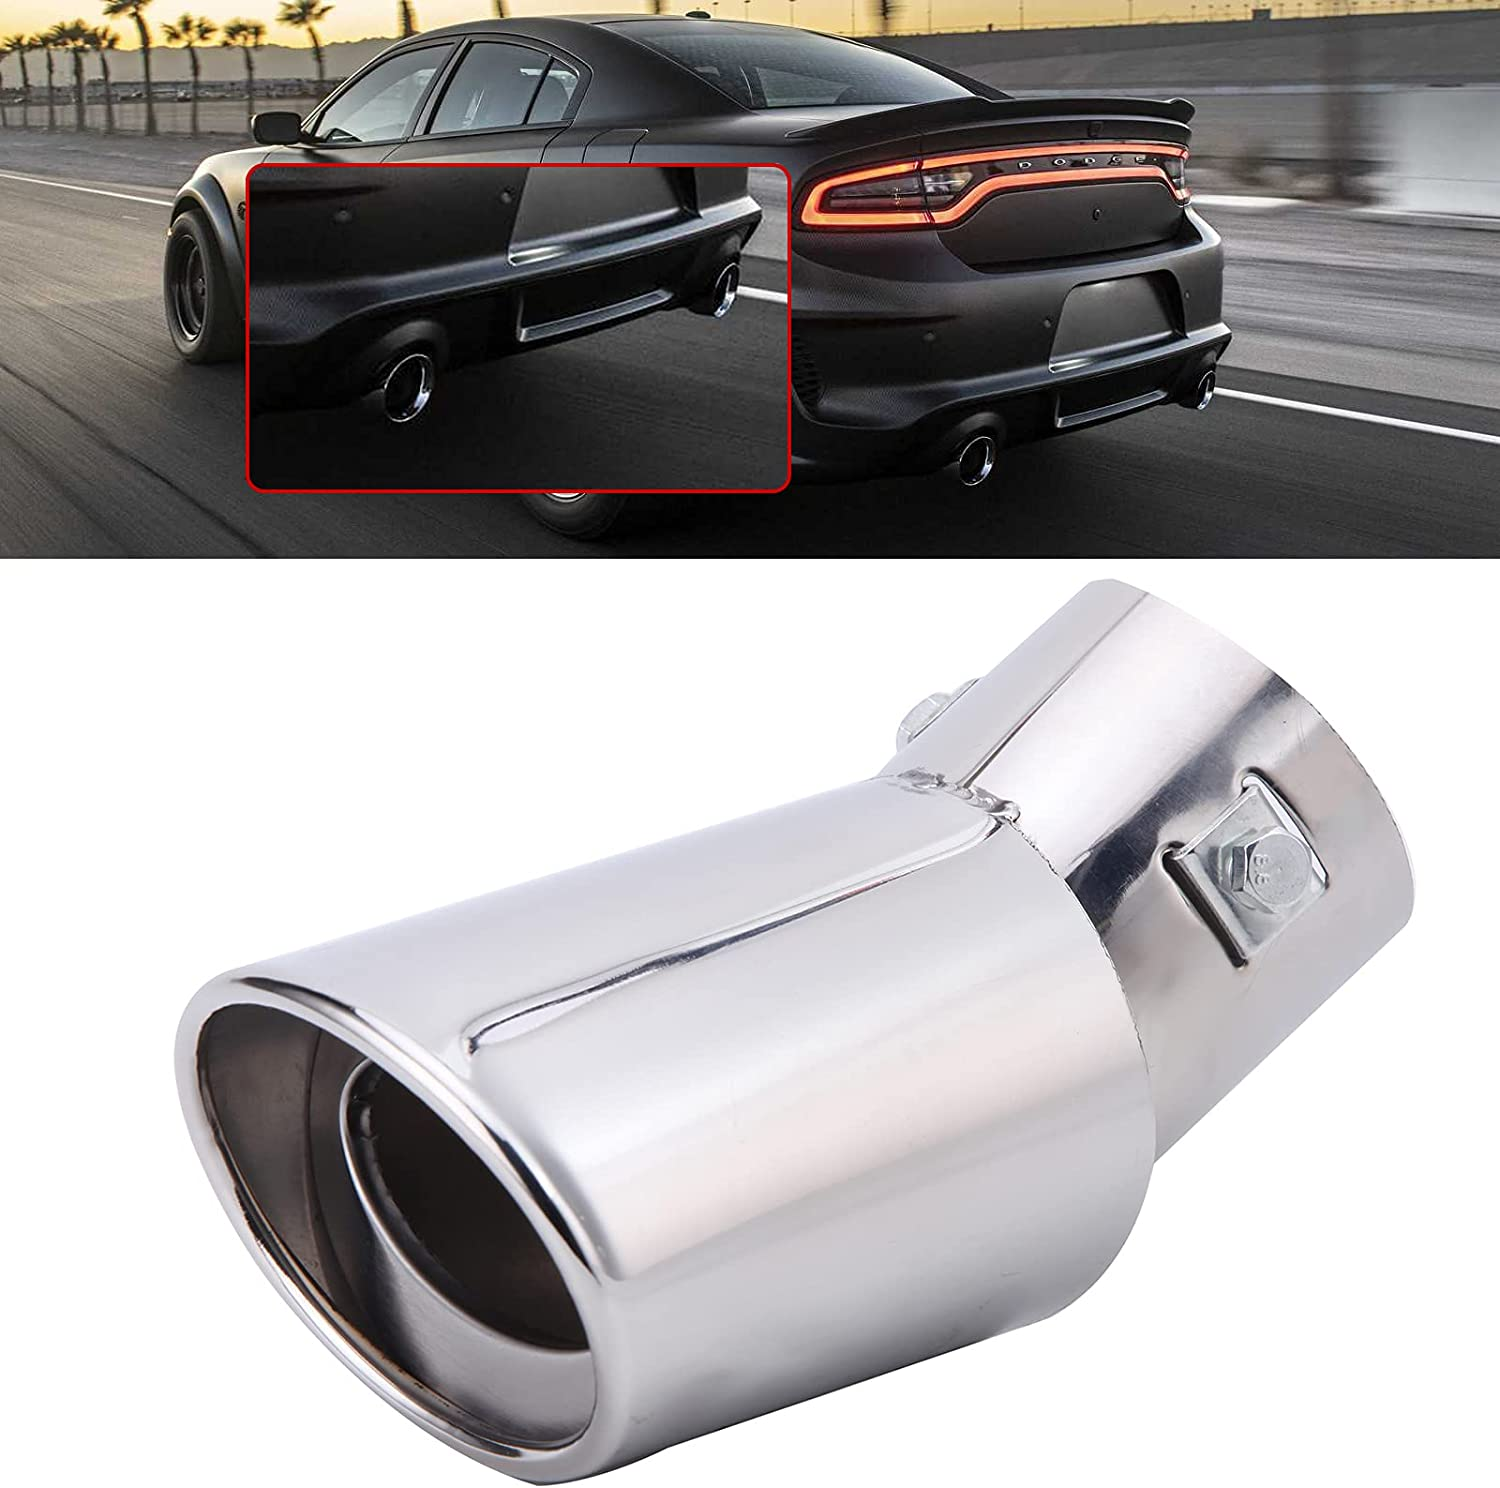 Chrome Auto Fashionable Car Exhaust At the price Pipe Tip Tail Muffler Stainless Re Steel